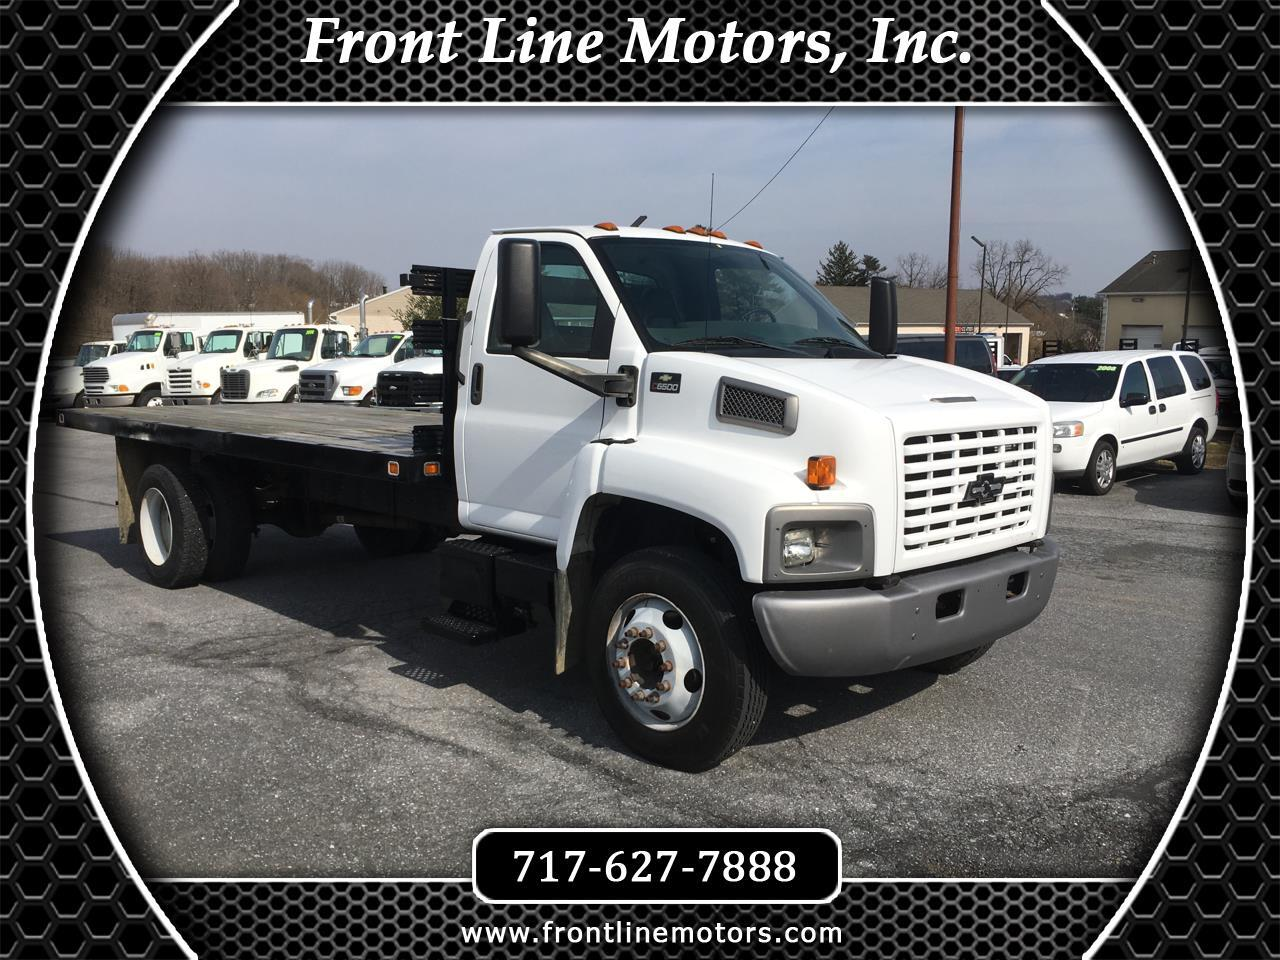 2005 Chevrolet CC6500 Regular Cab